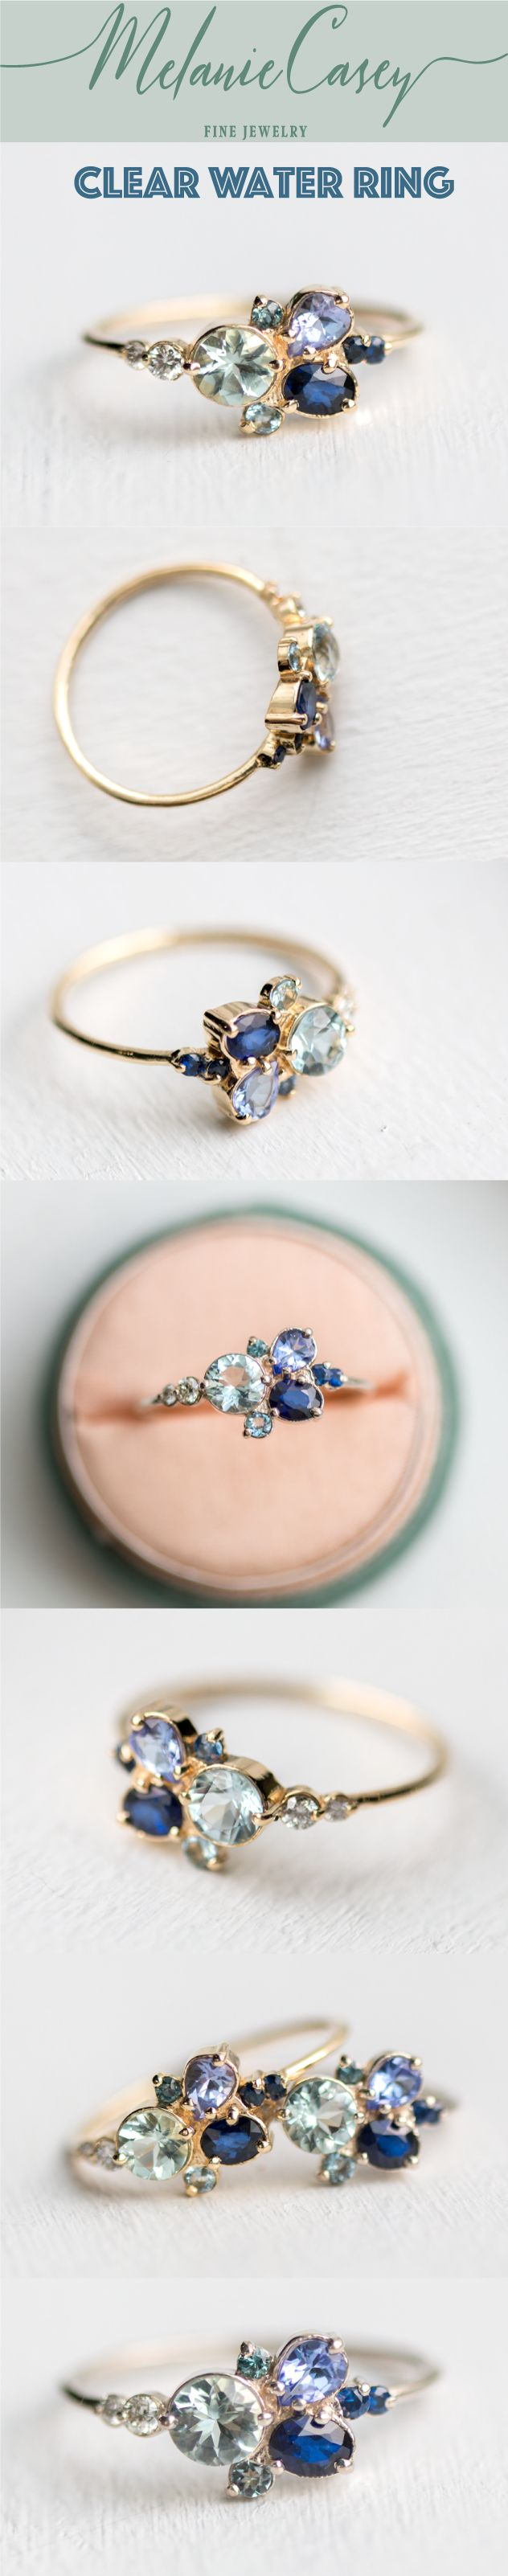 Best 25 Organic engagement rings ideas only on Pinterest